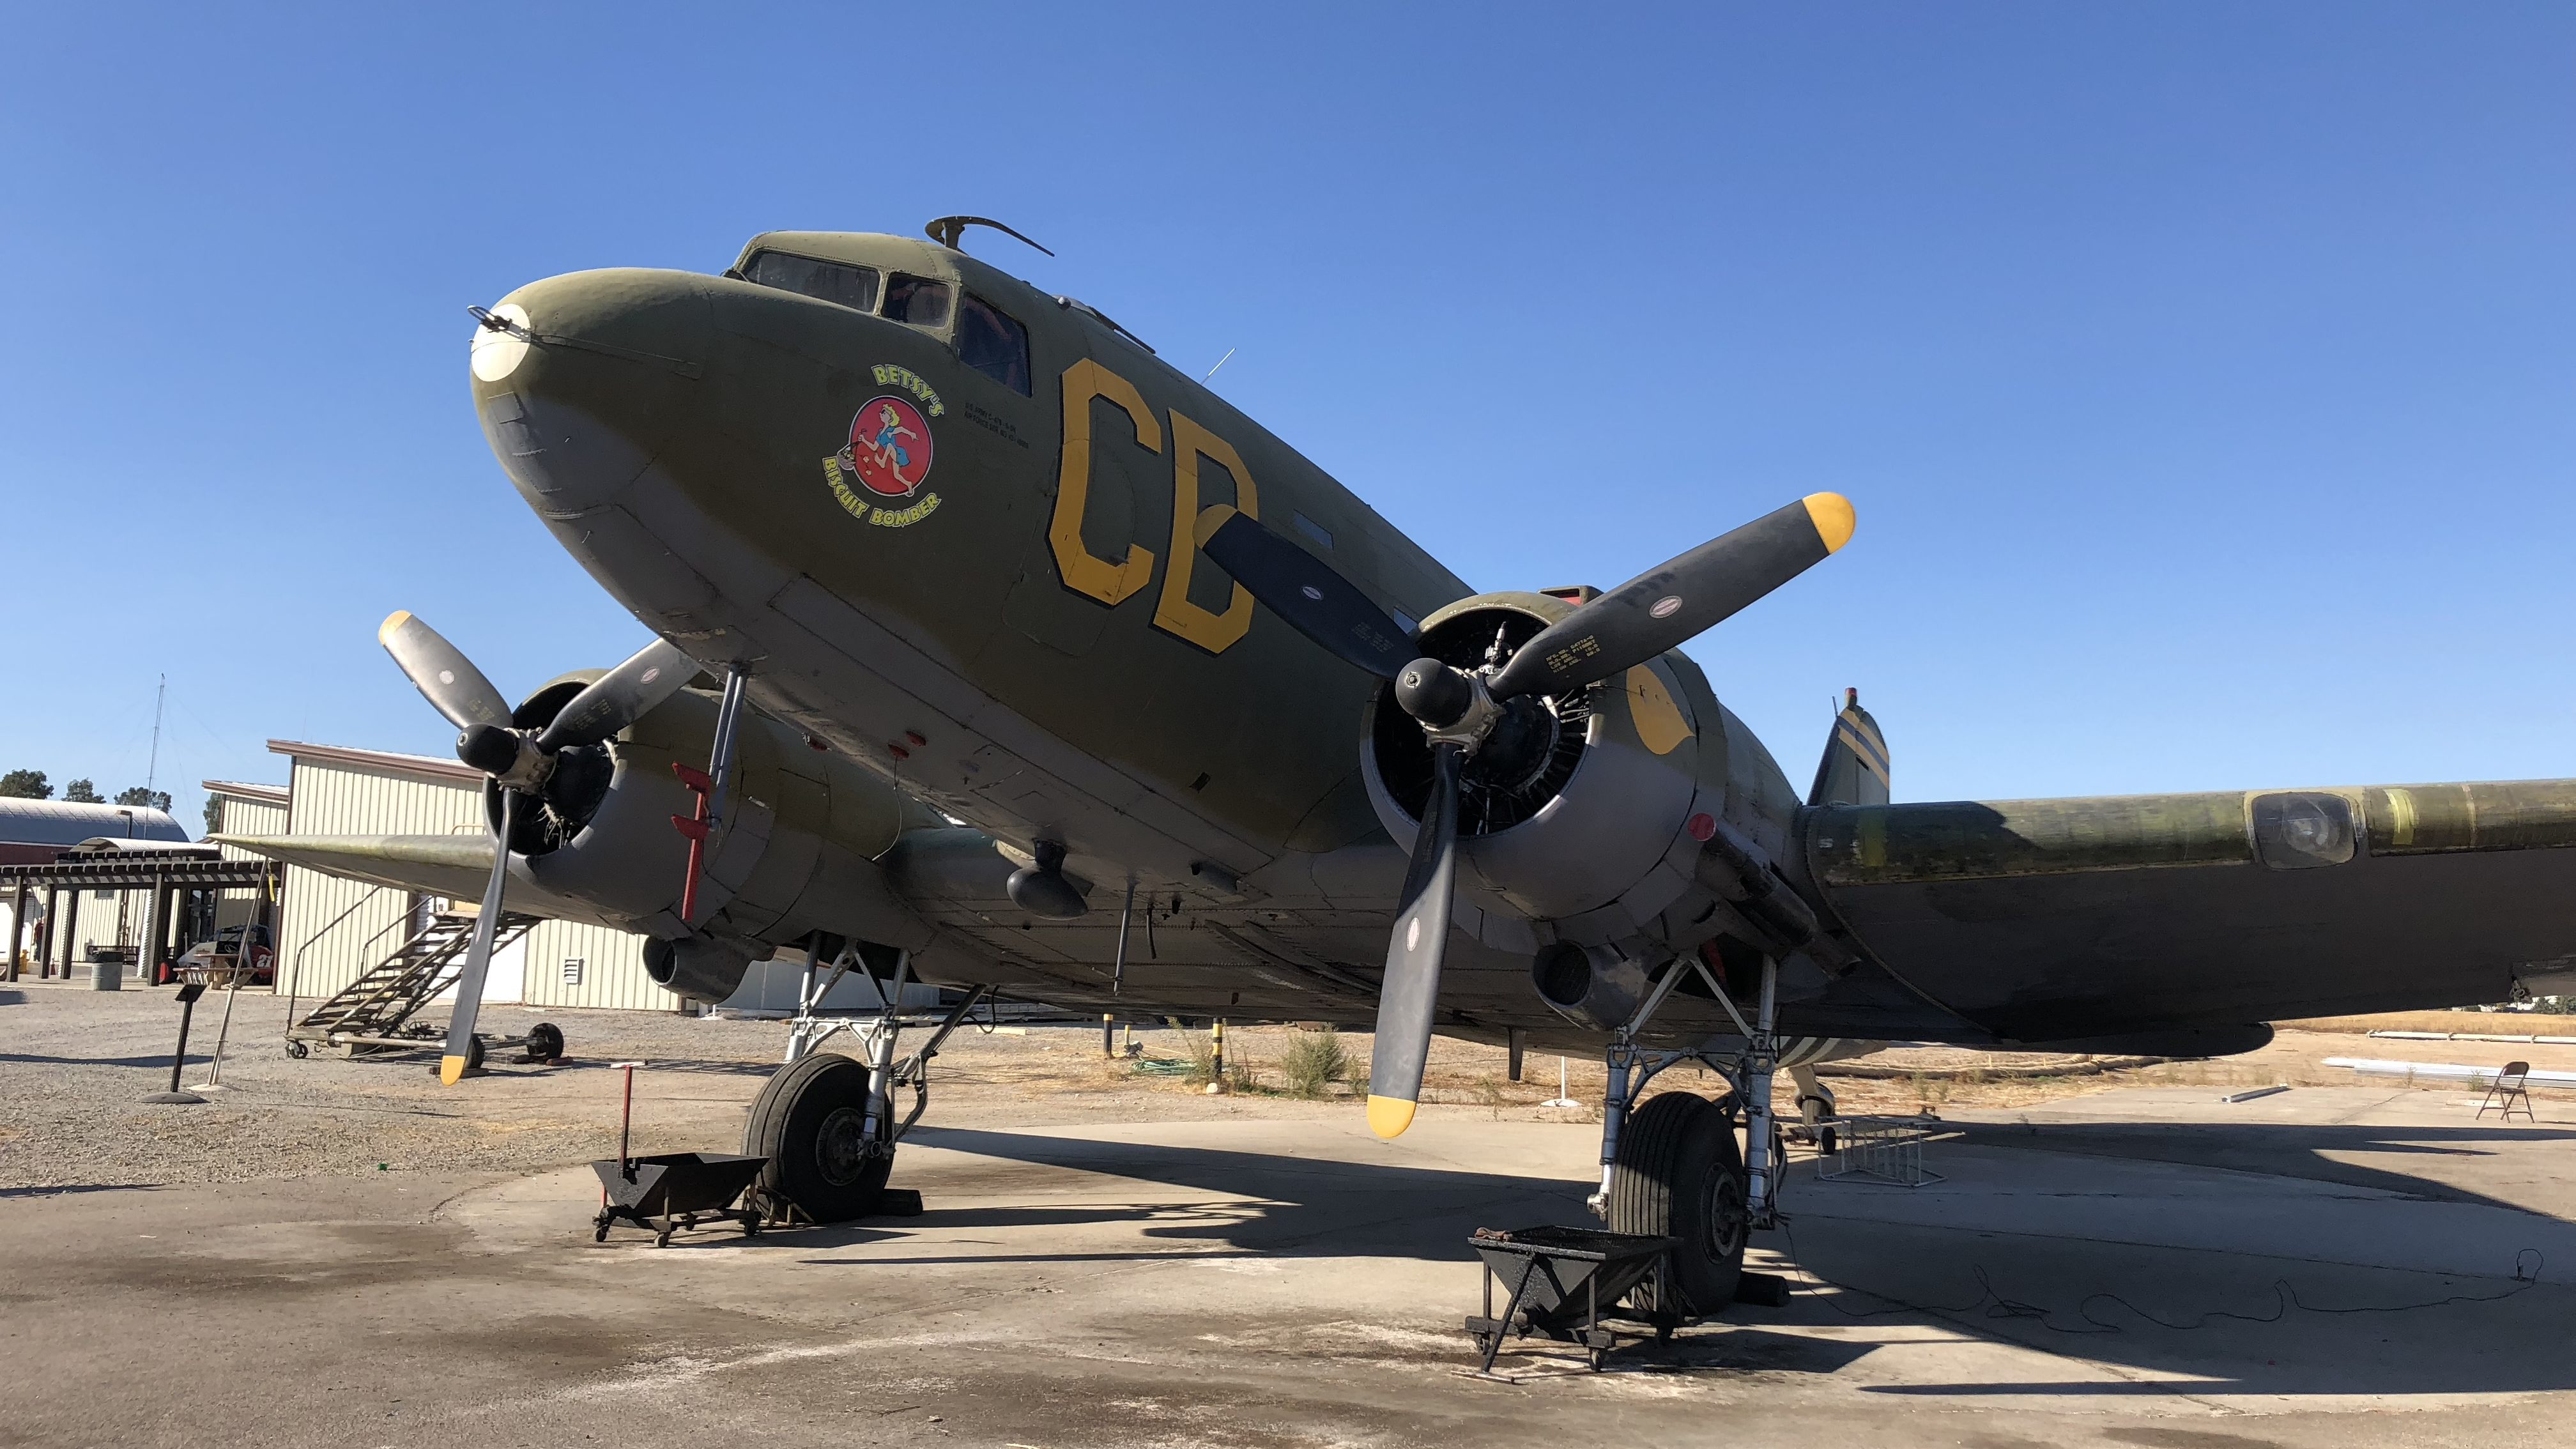 Central Coast Living: Check out vintage airplanes, cars at Estrella